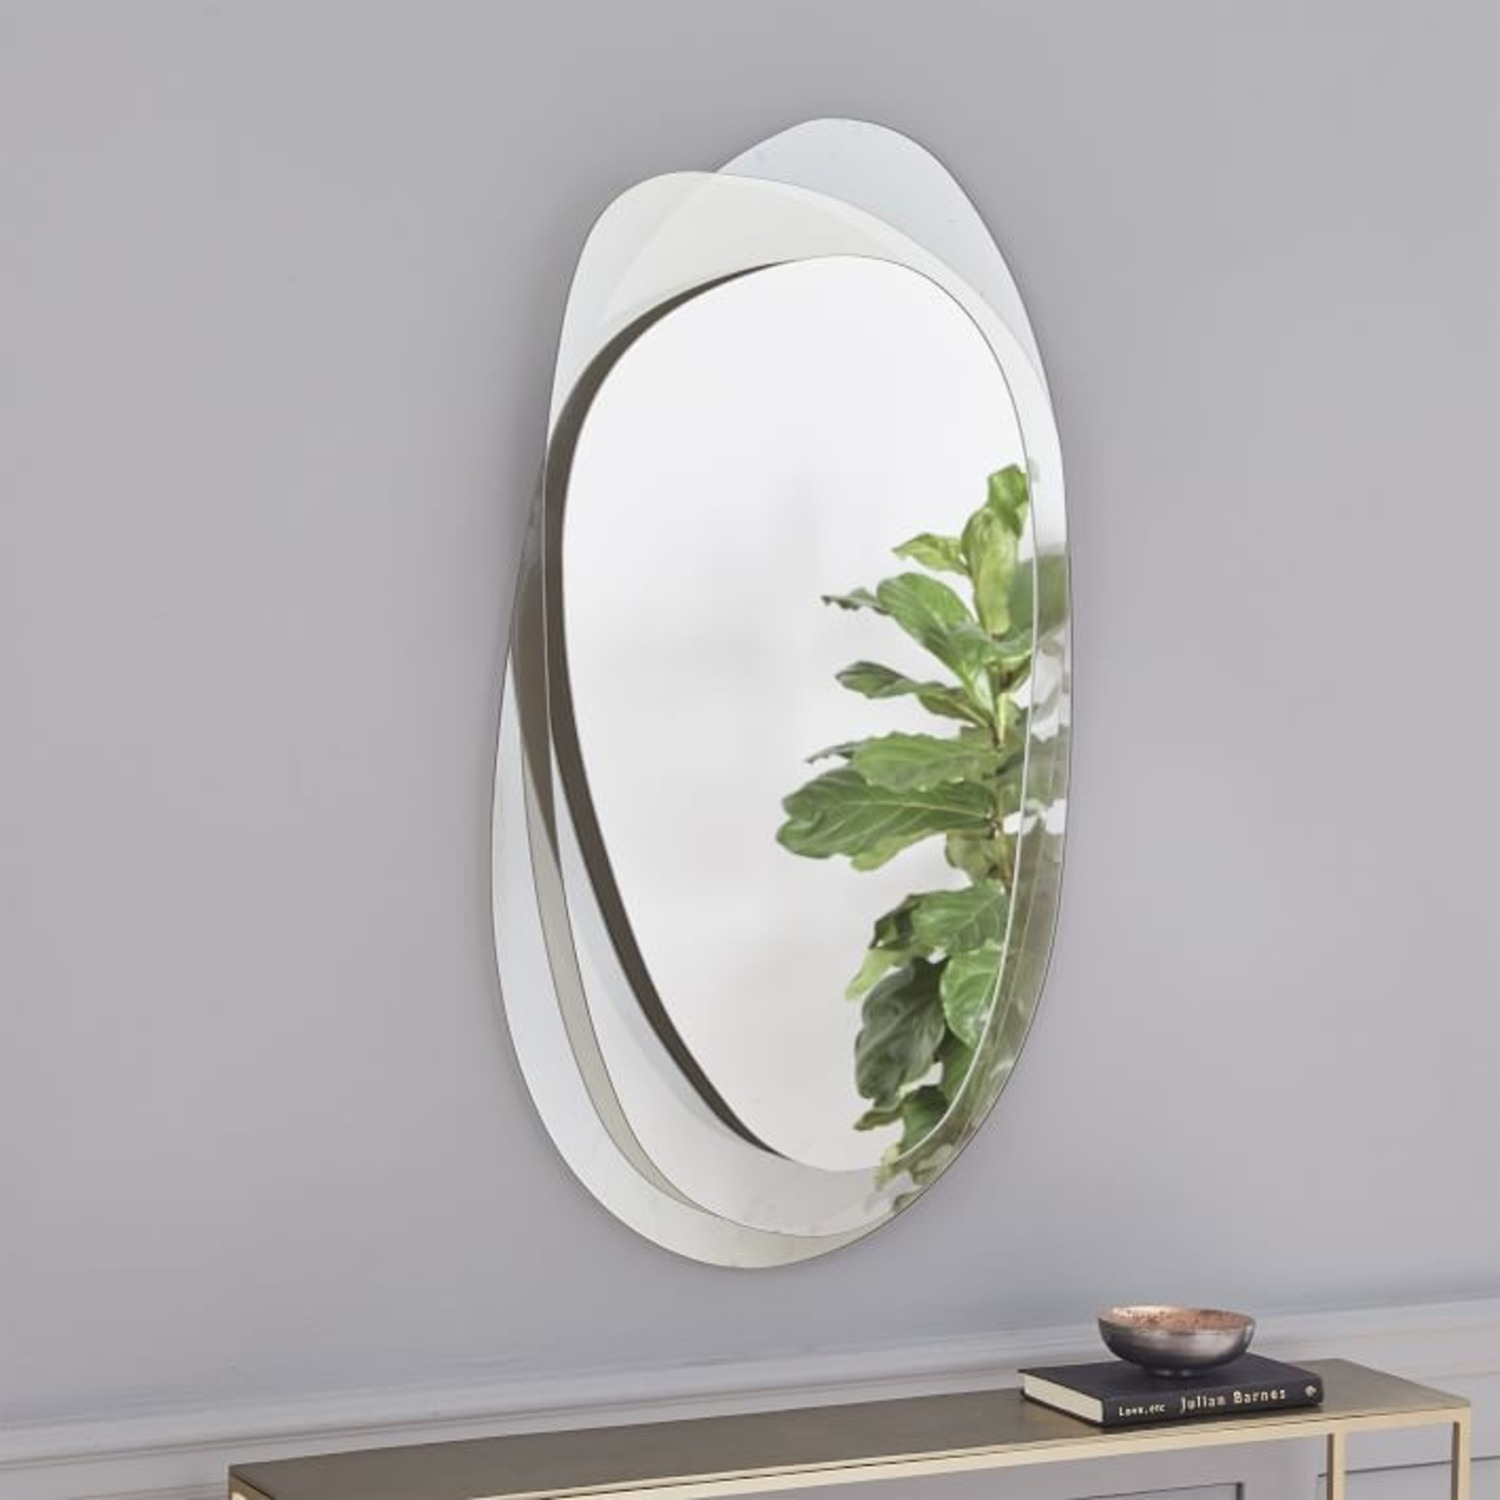 West Elm Layered Glass Wall Mirror - image-2